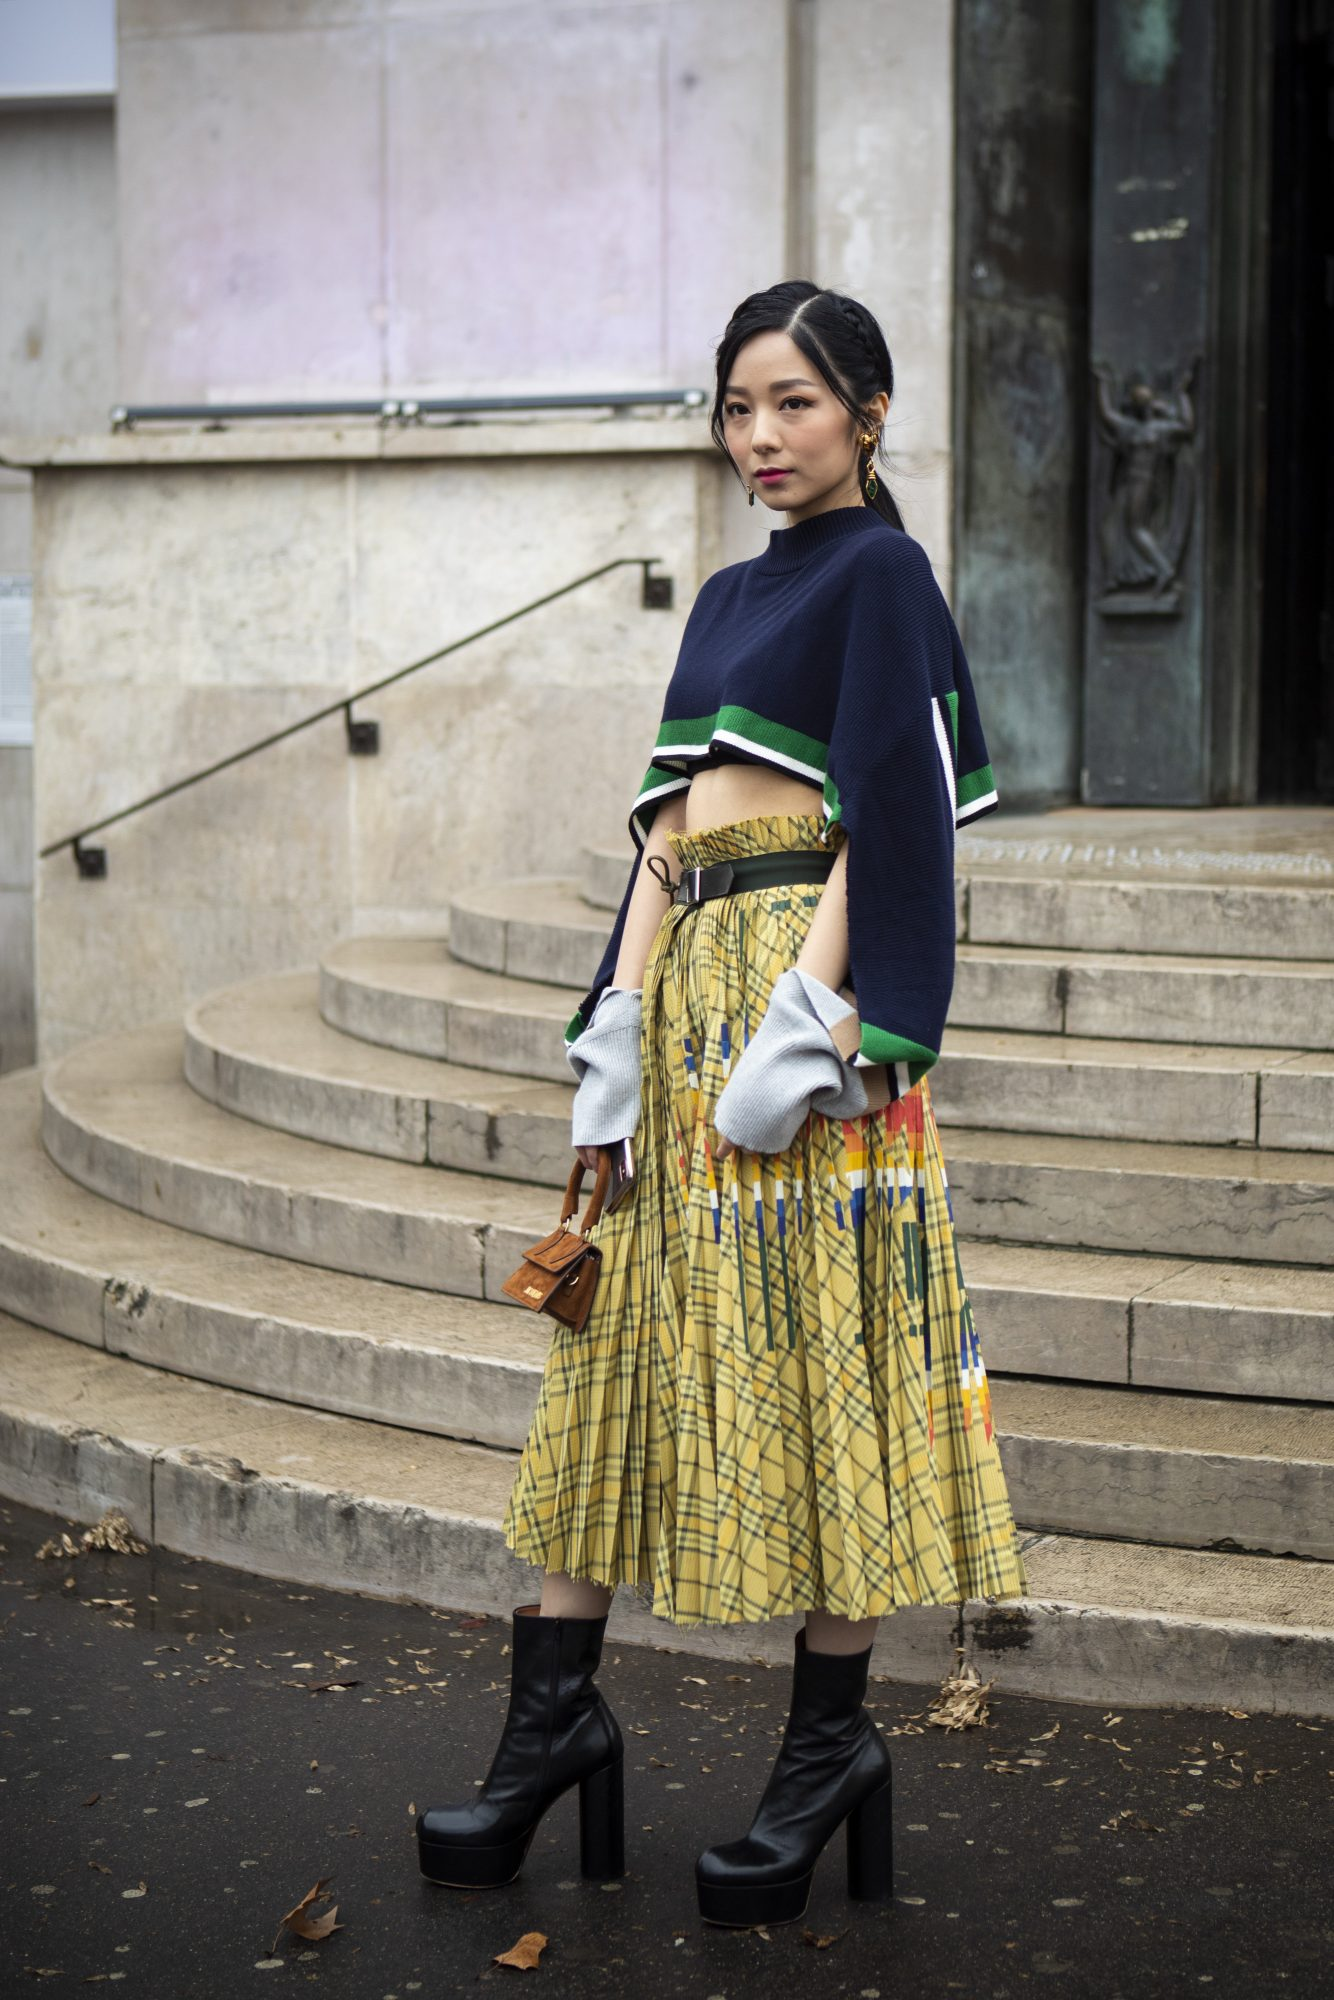 Stand out with patterned skirts